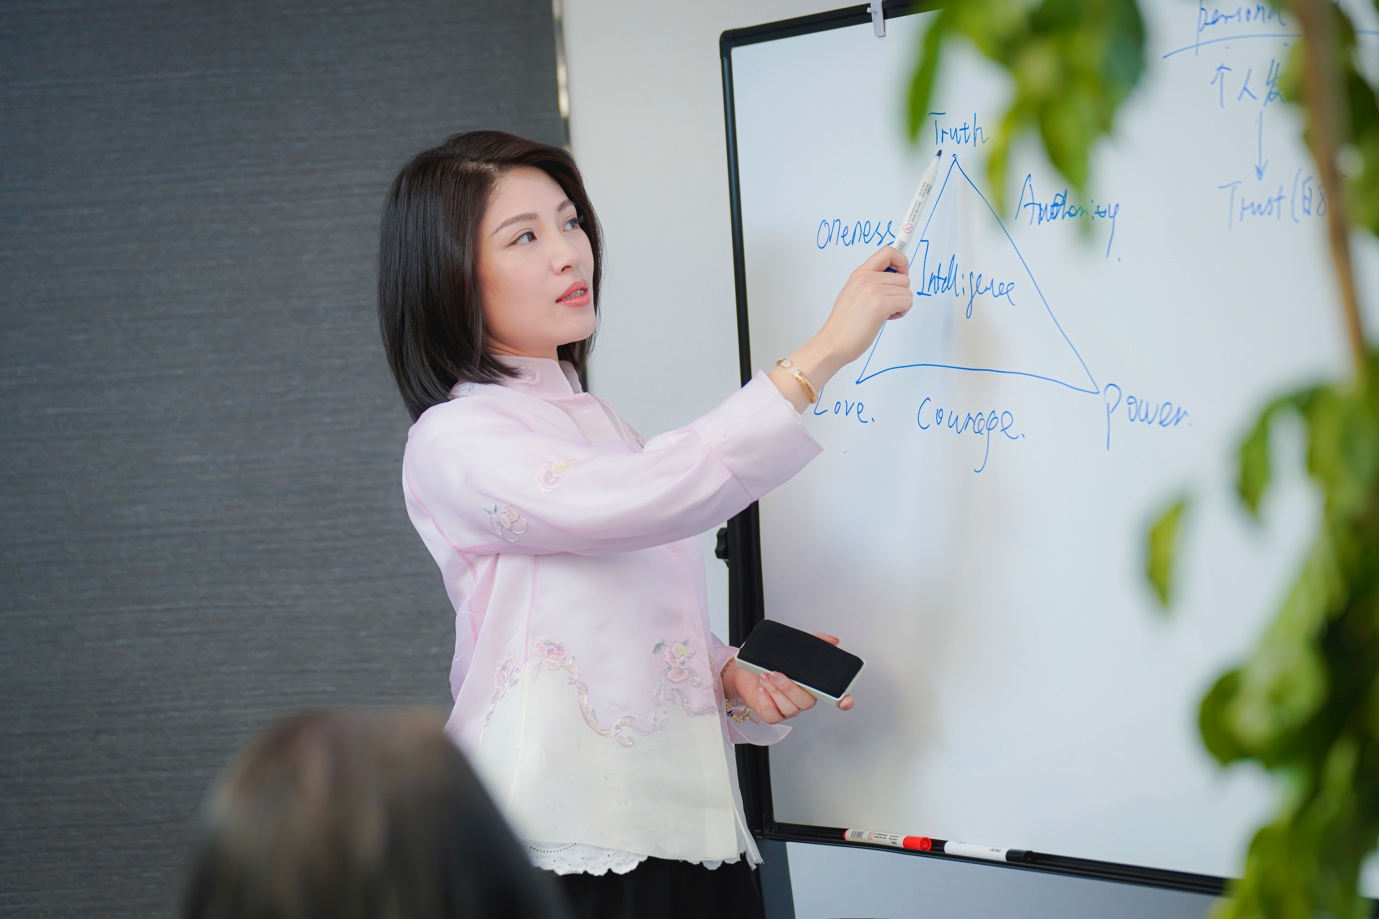 A person writing on a white board  Description automatically generated with medium confidence